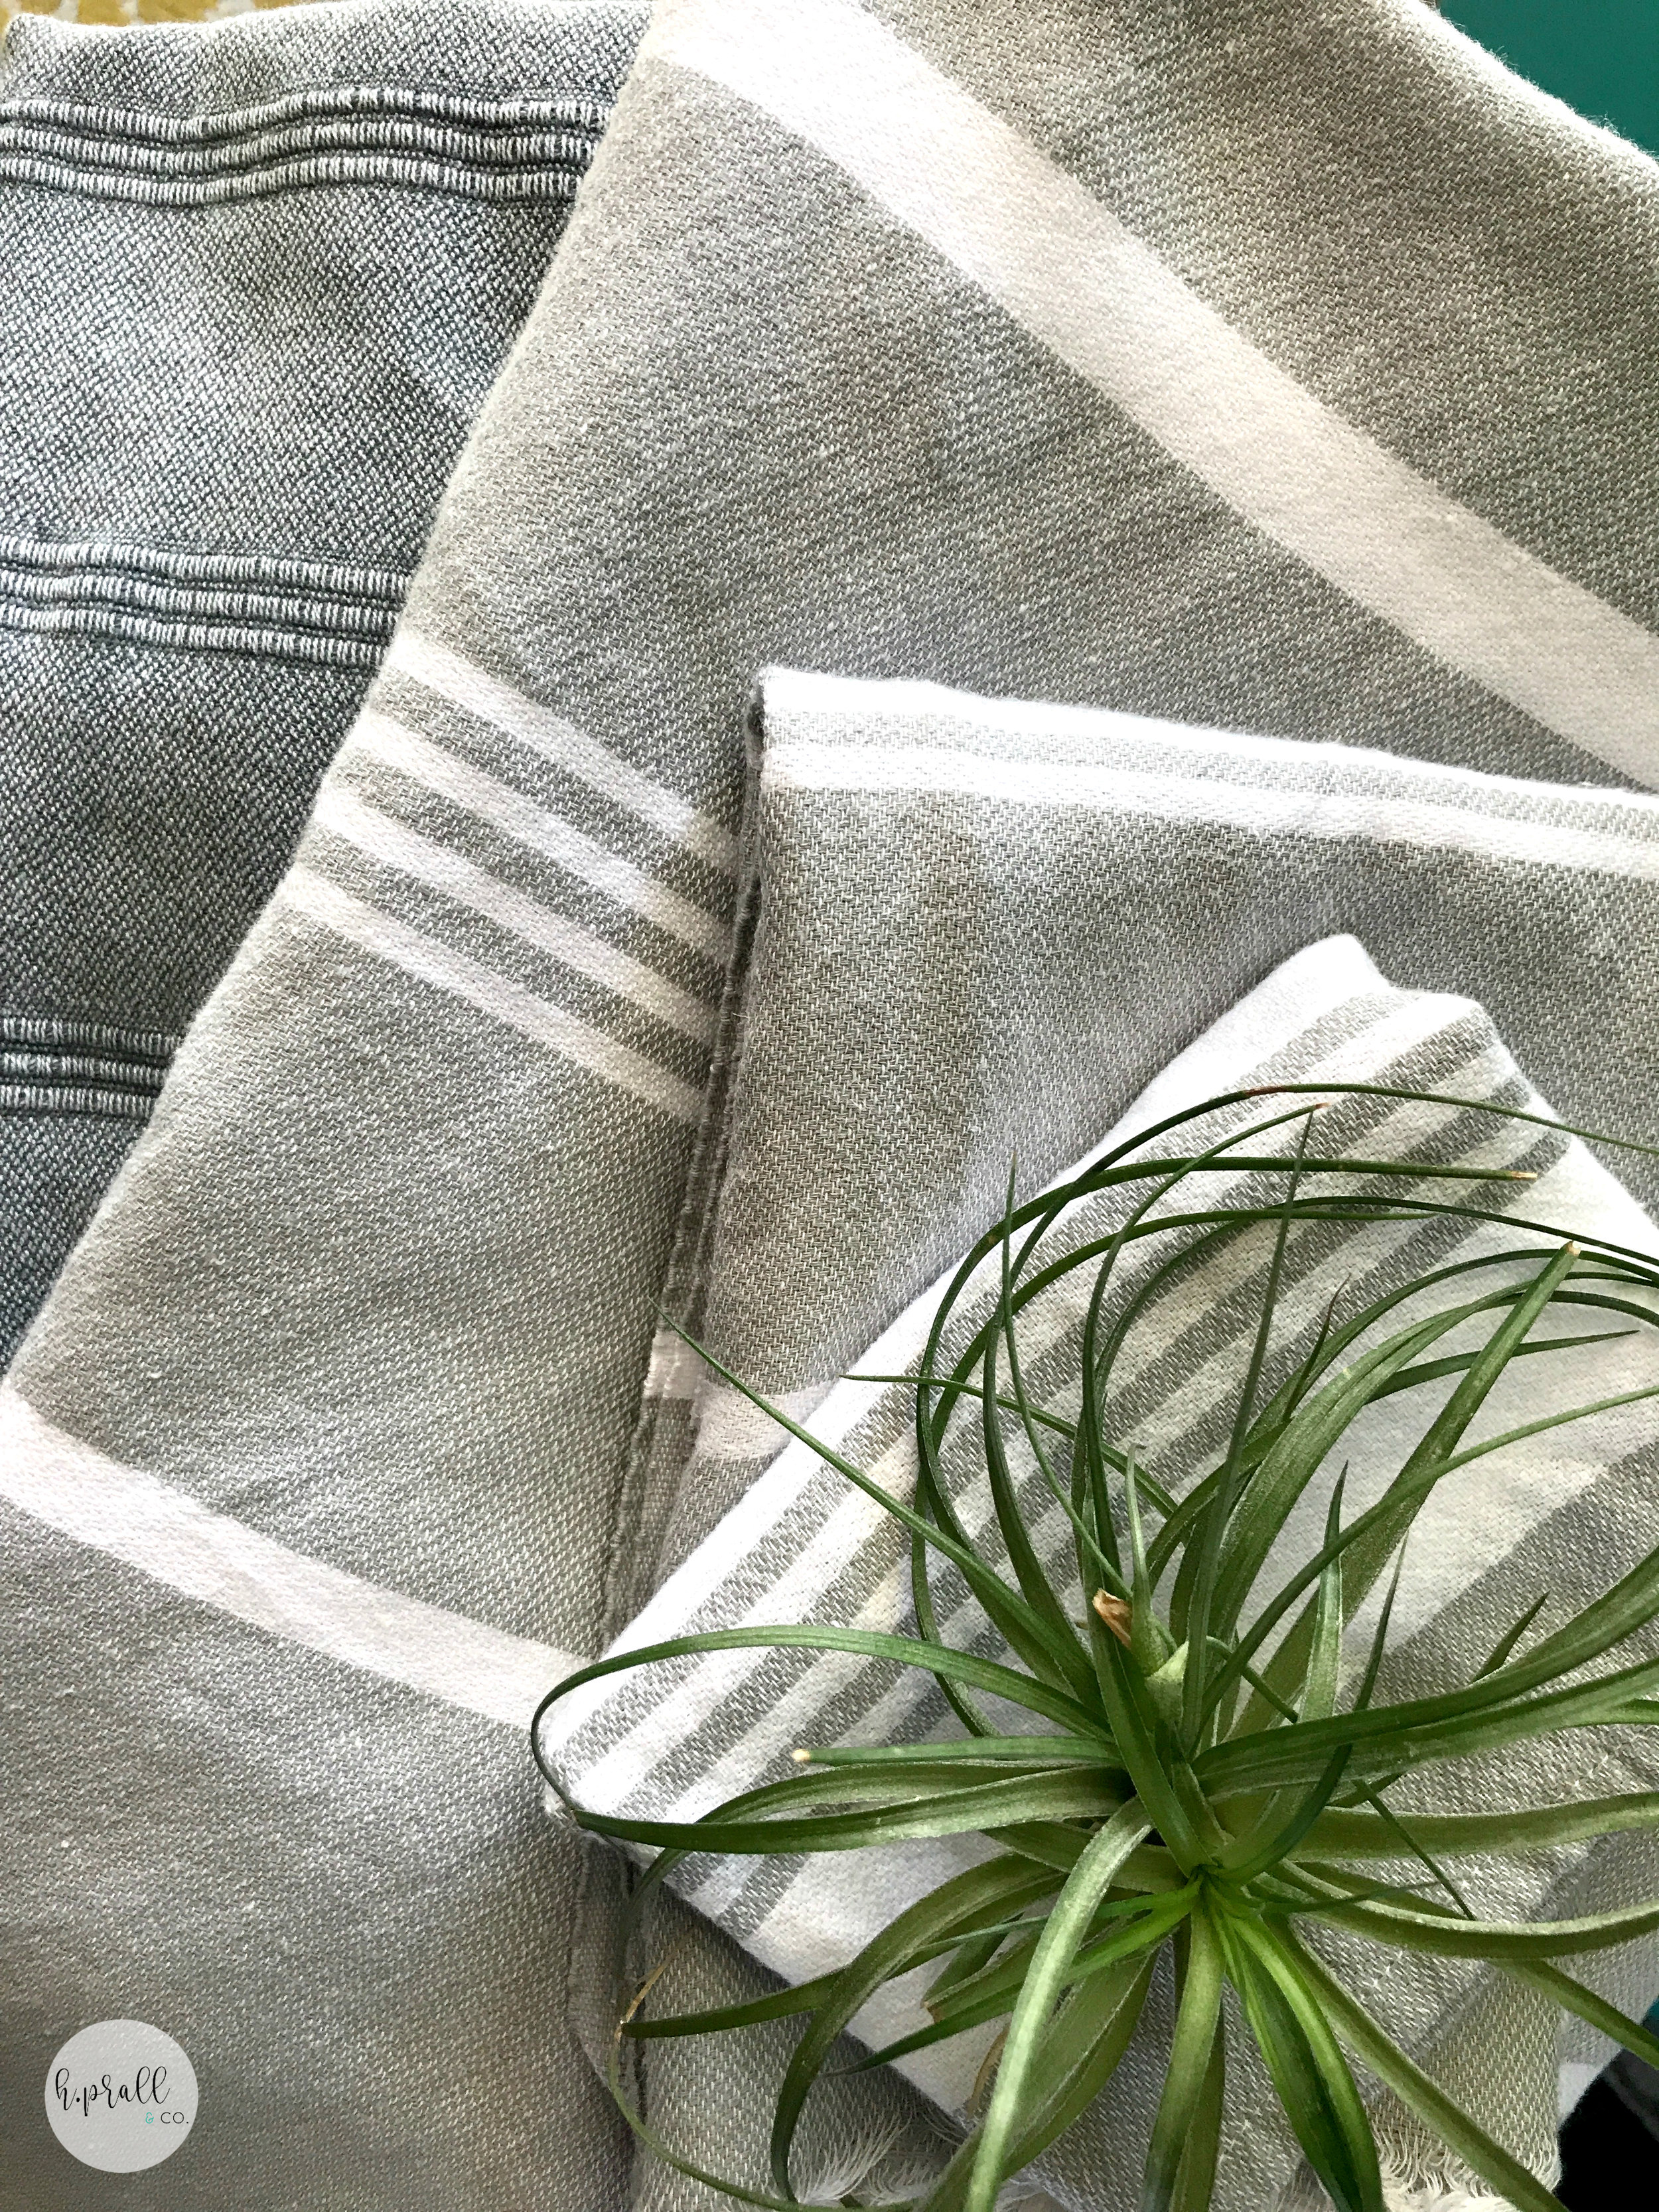 Gray and white striped Turkish towels with a succulent plant sitting on top via  H.Prall & Co.